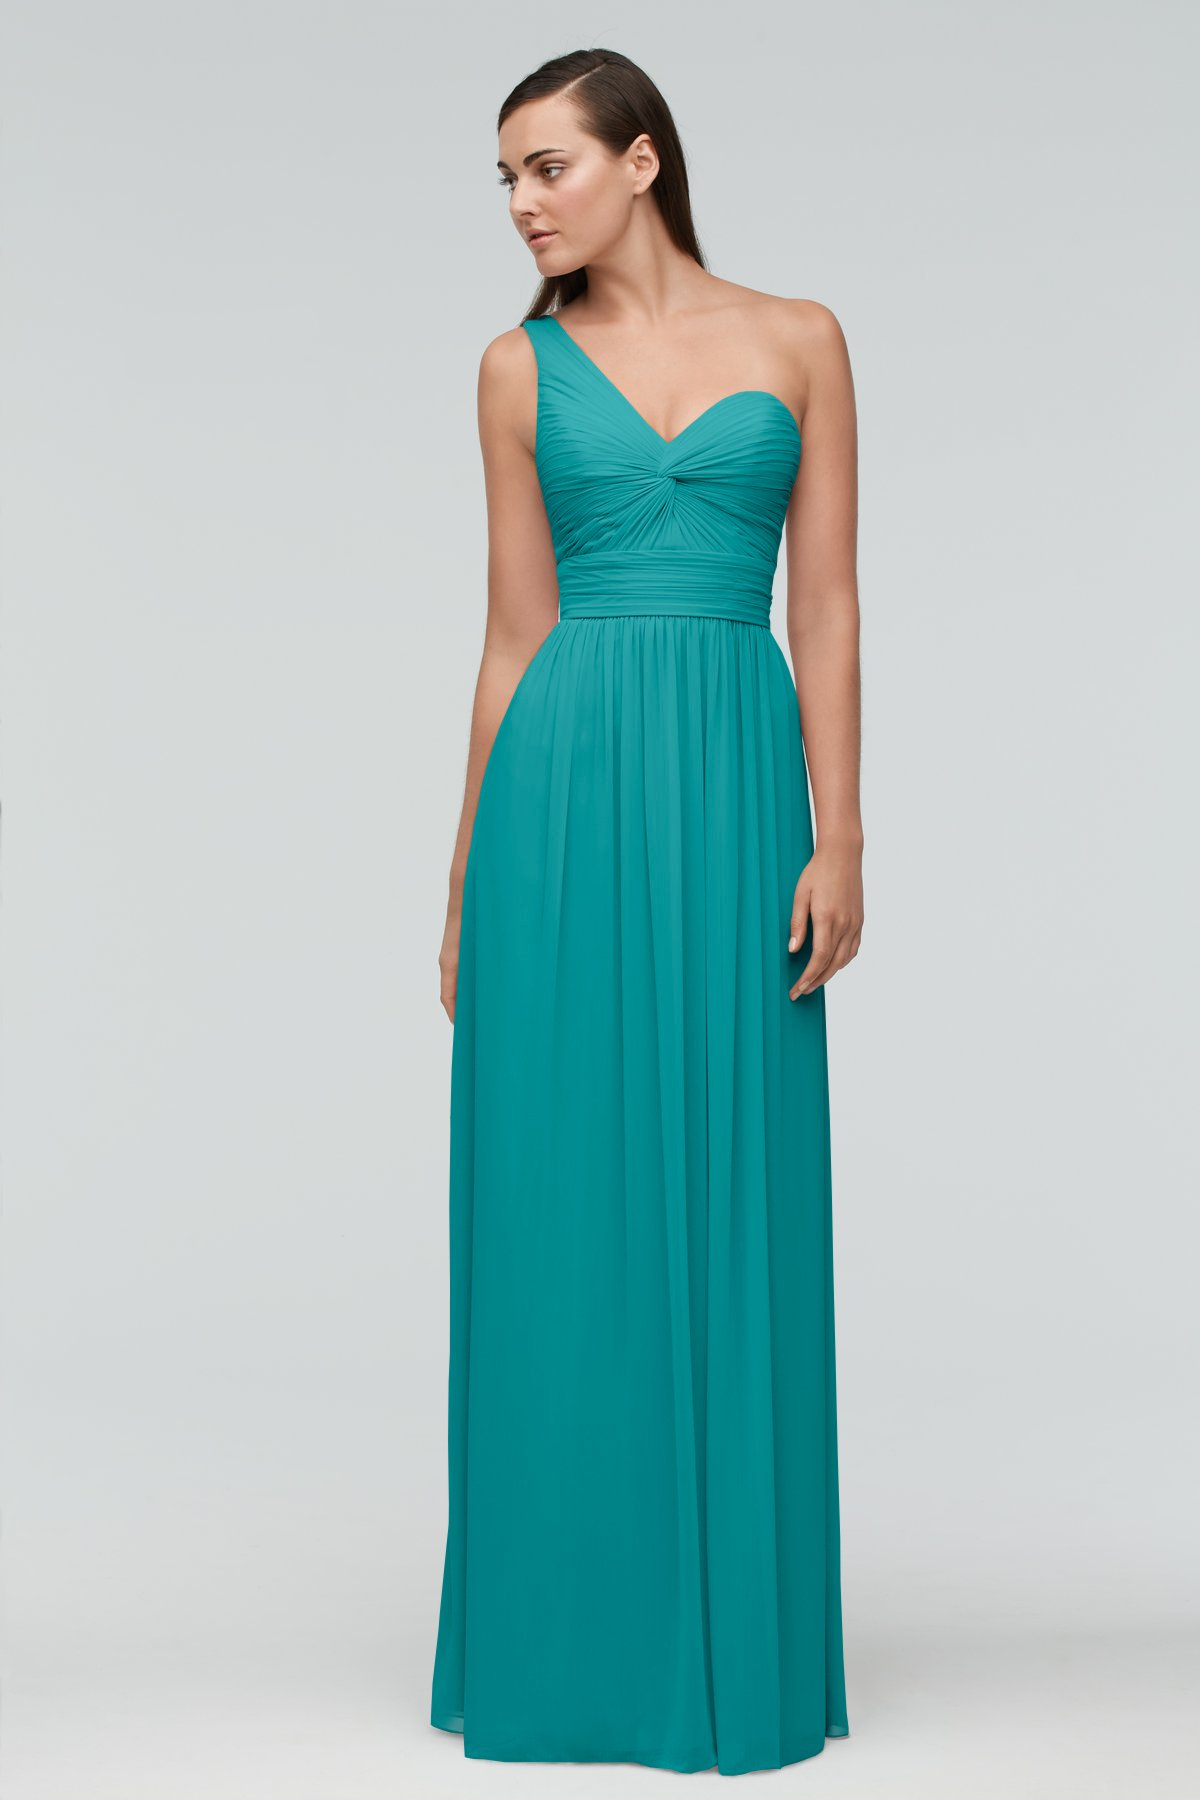 One Shoulder Aqua Green Long Bridesmaid Dress